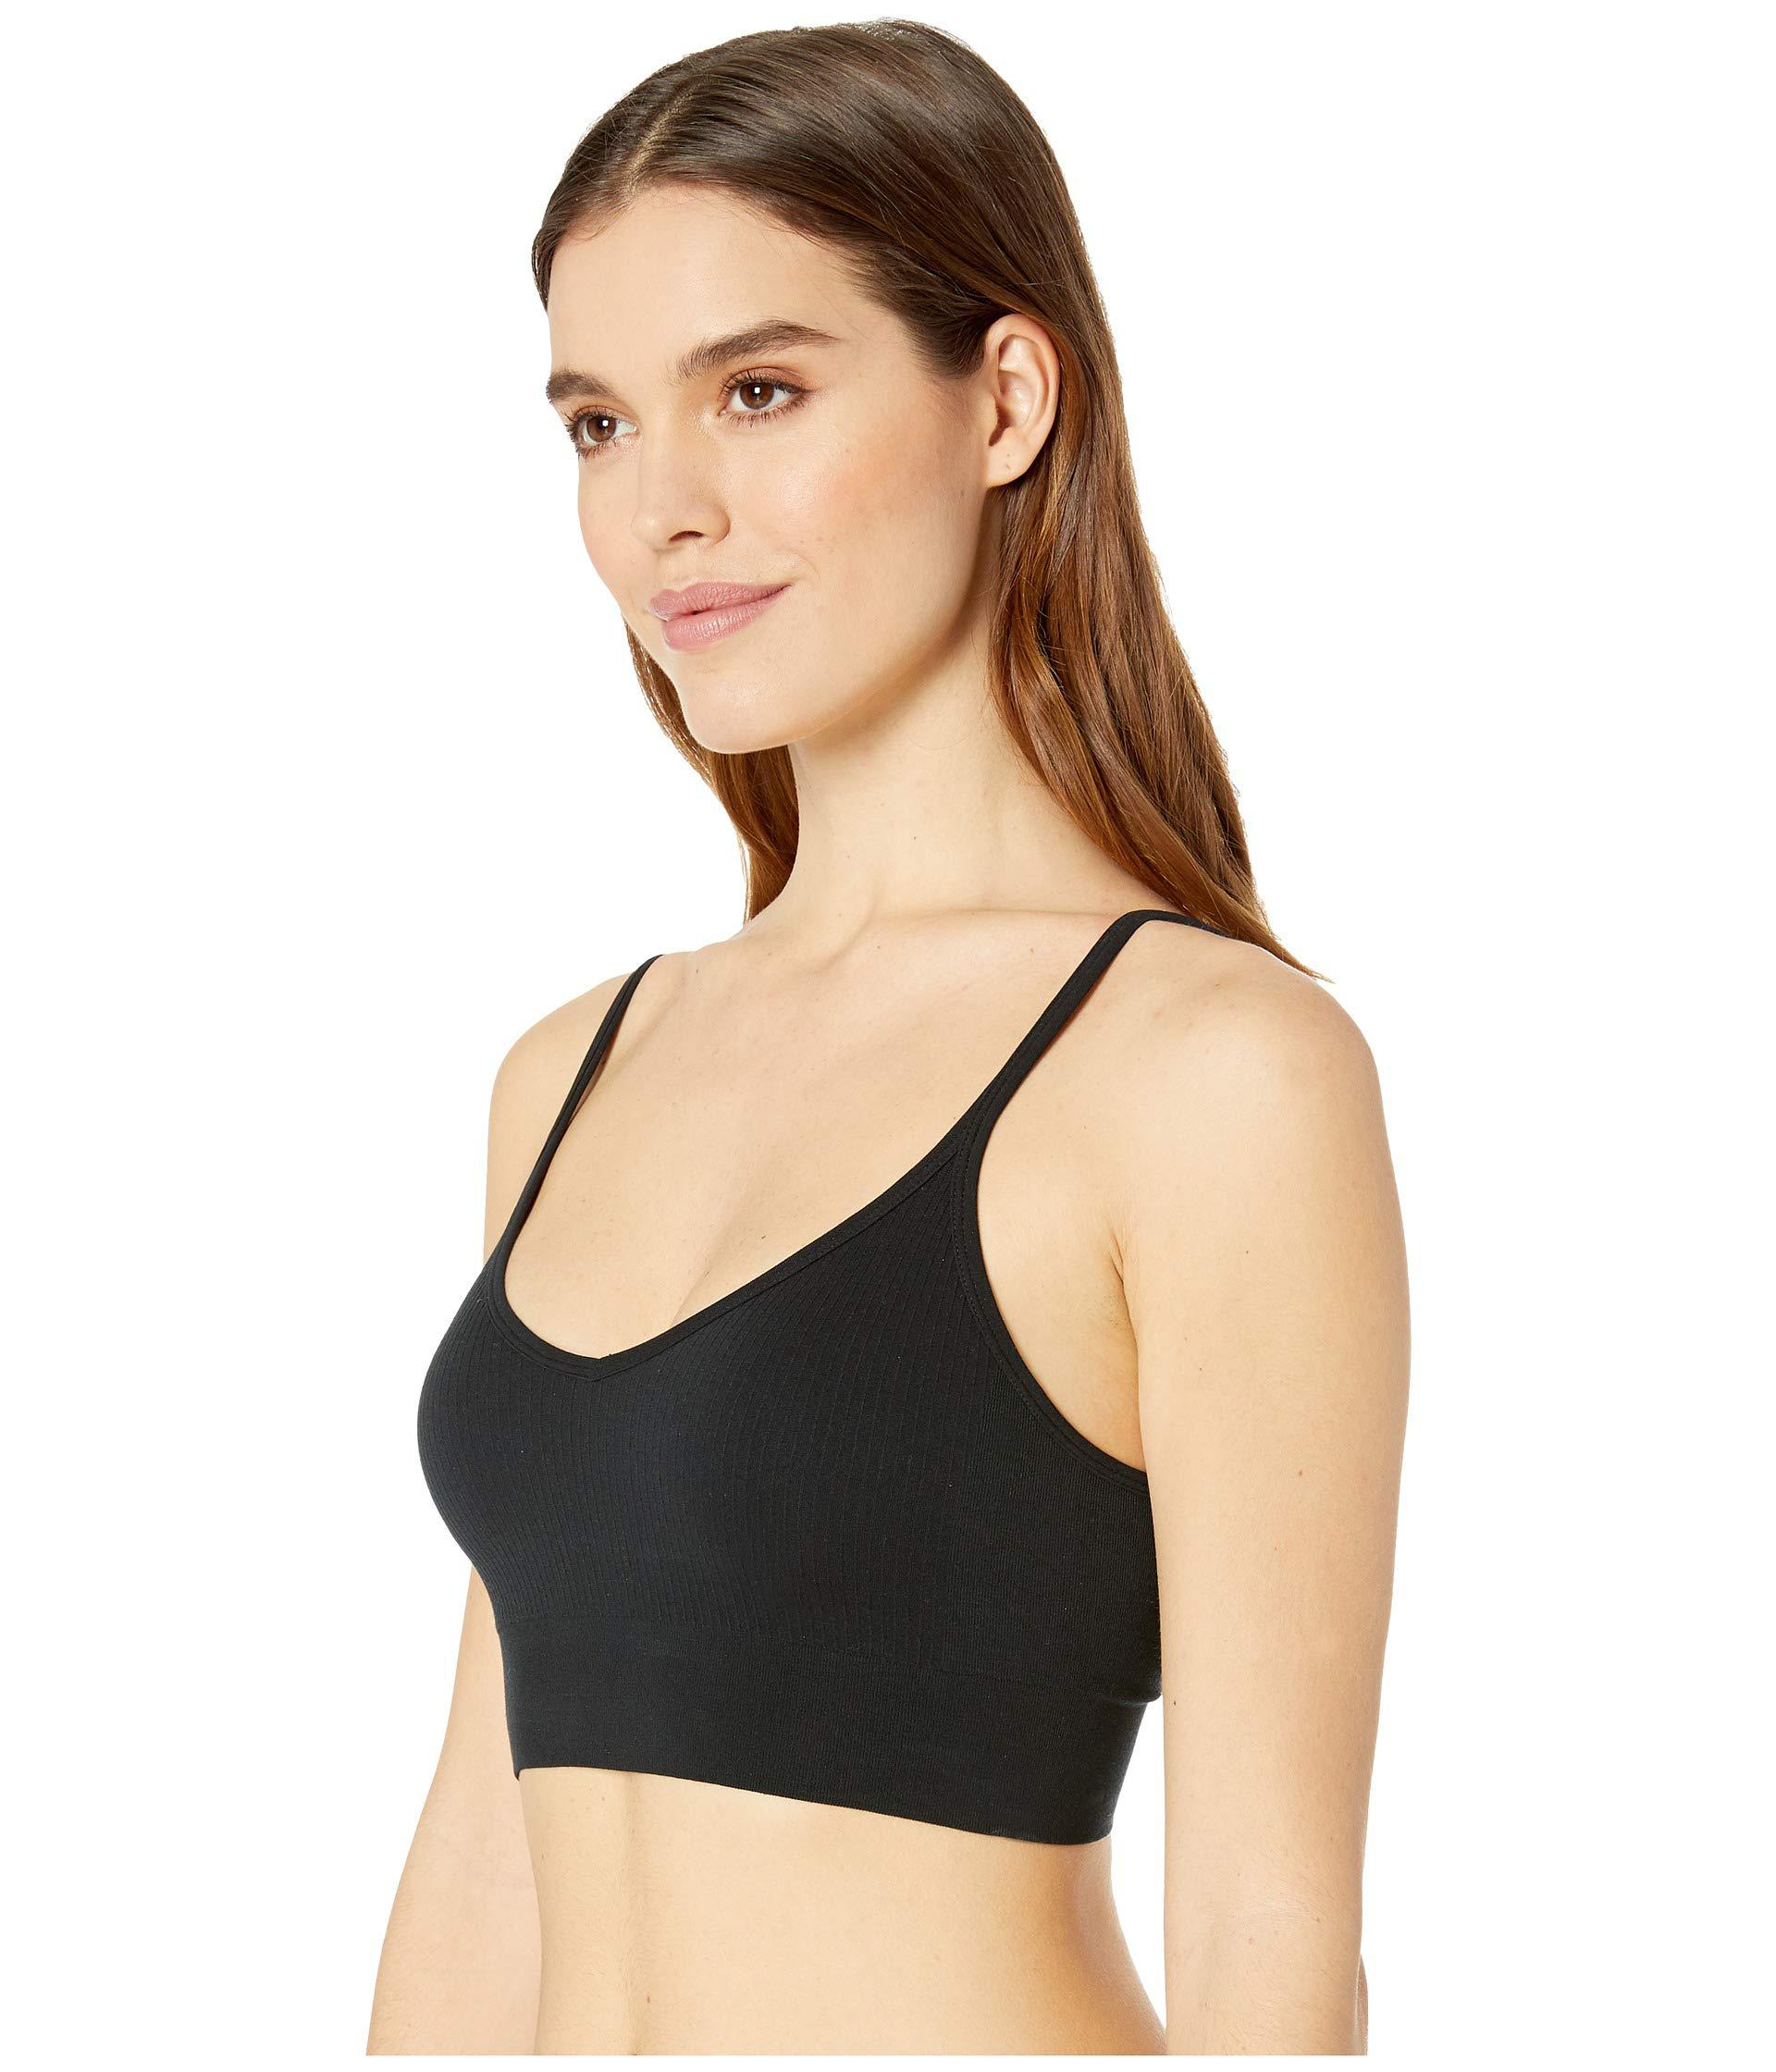 b9368d40ce9420 Lyst - Spanx Laidback Layers Seamless Bralette in Black - Save  36.8421052631579%